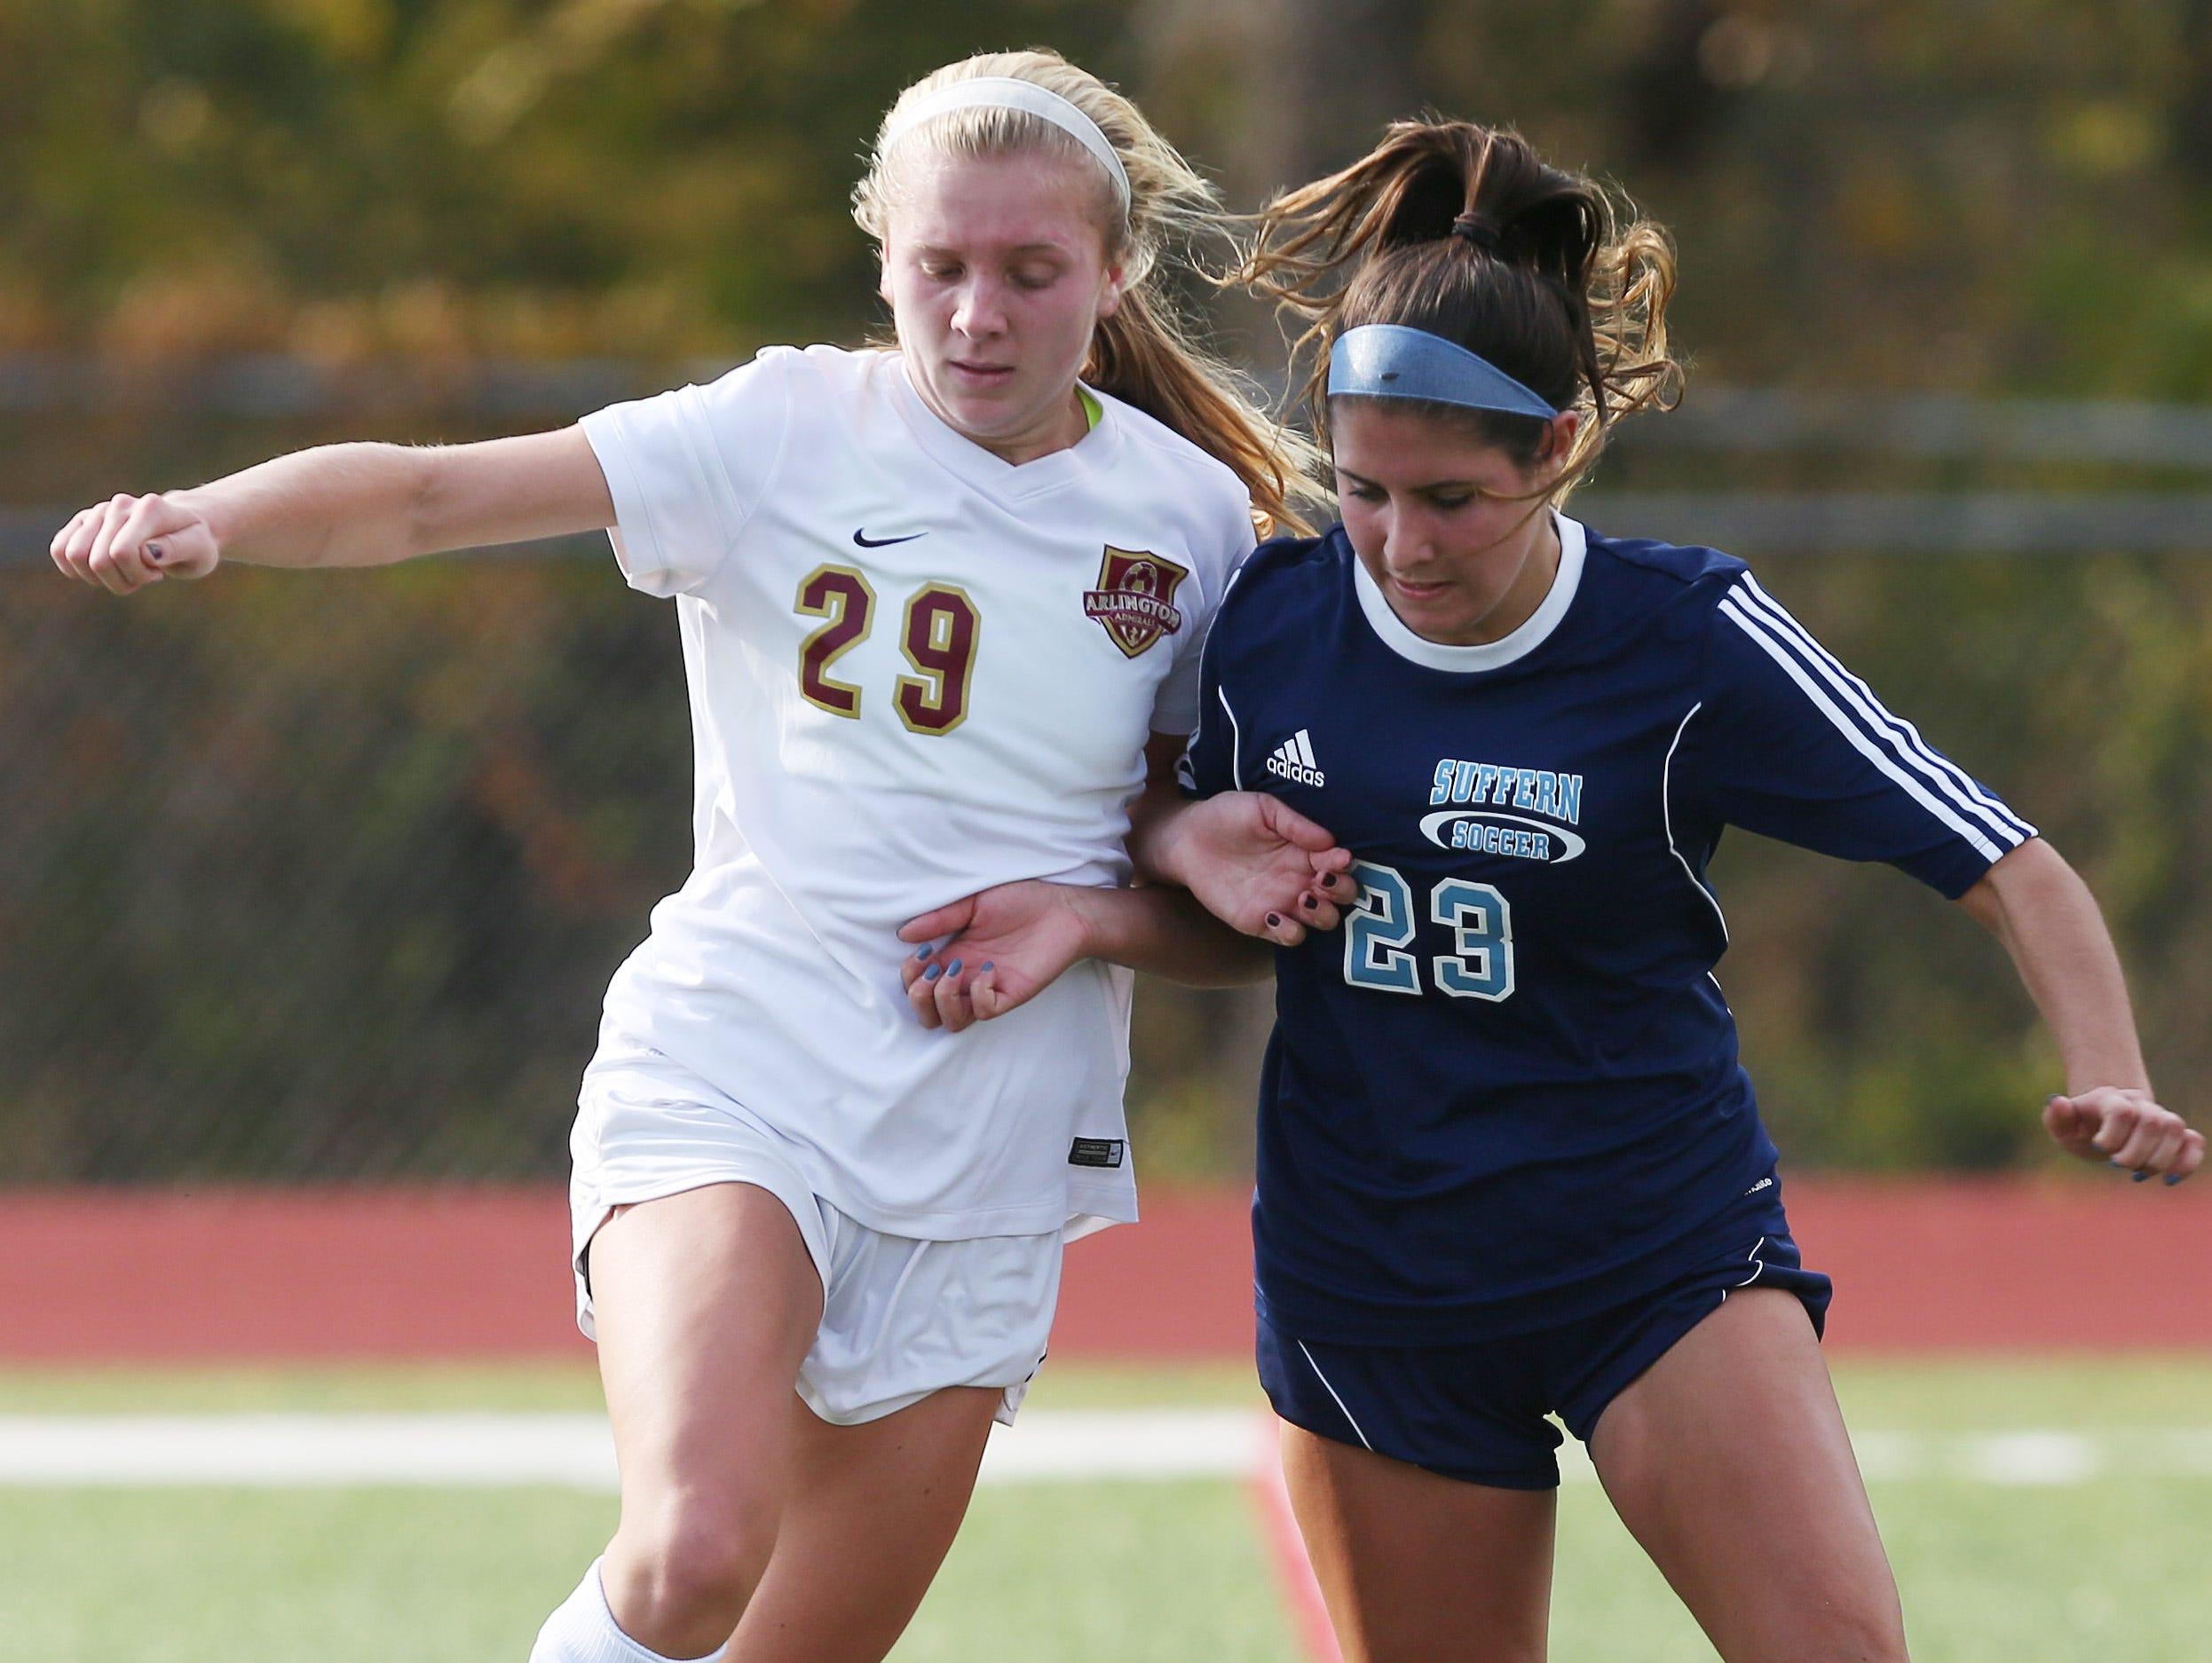 From left, Arlington's Molly Feighan and Suffern's Jackie Santangelo battle for the ball during the Section 1 Class AA championship game at Yorktown High School on Sunday.